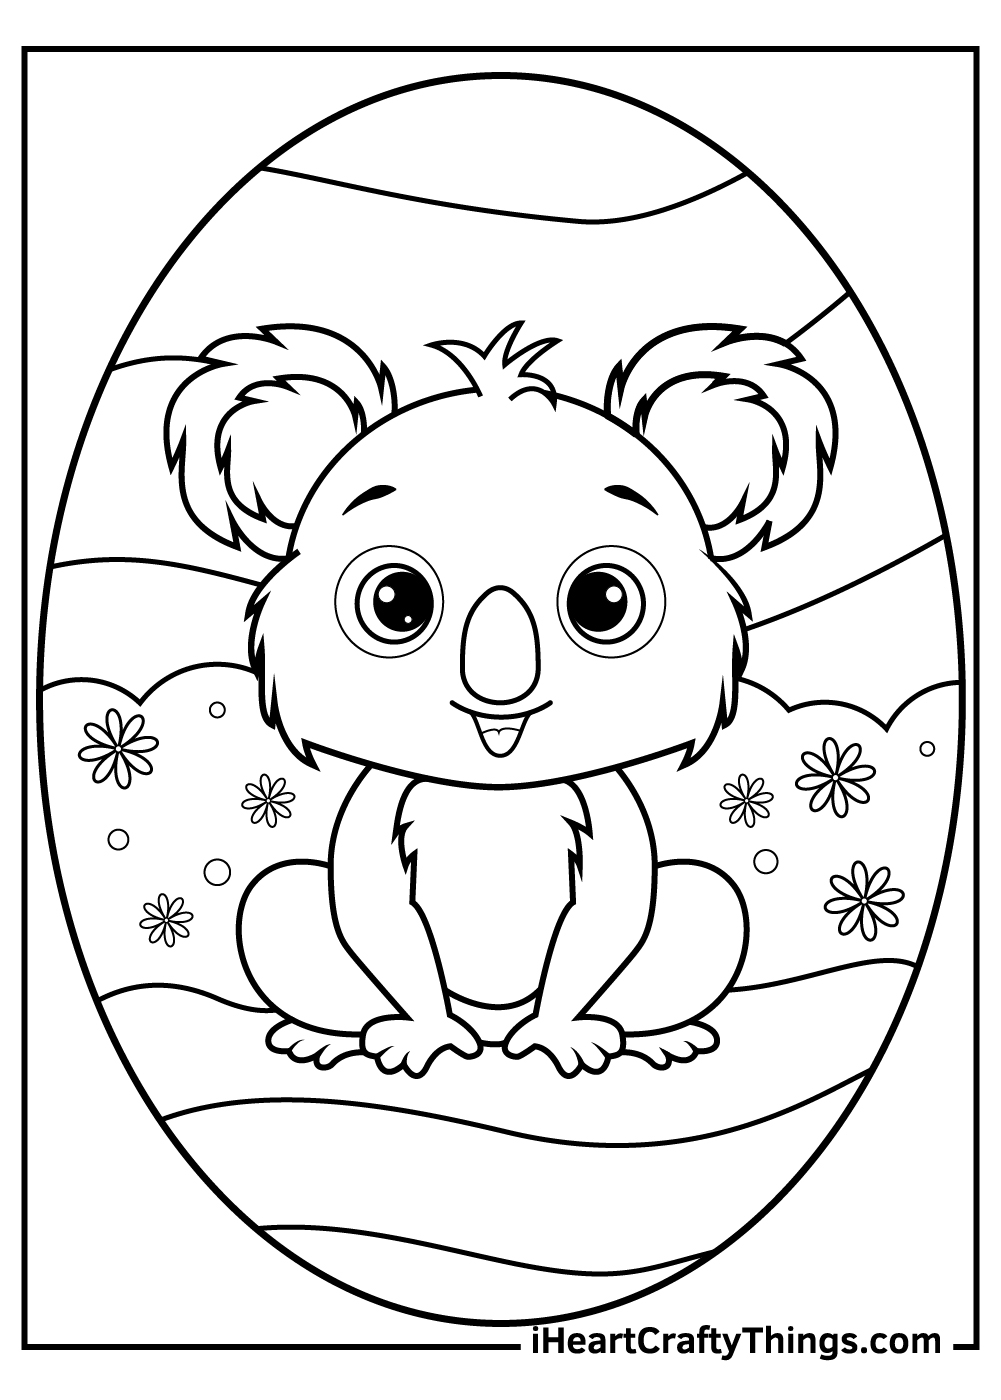 animated baby koalas coloring pages